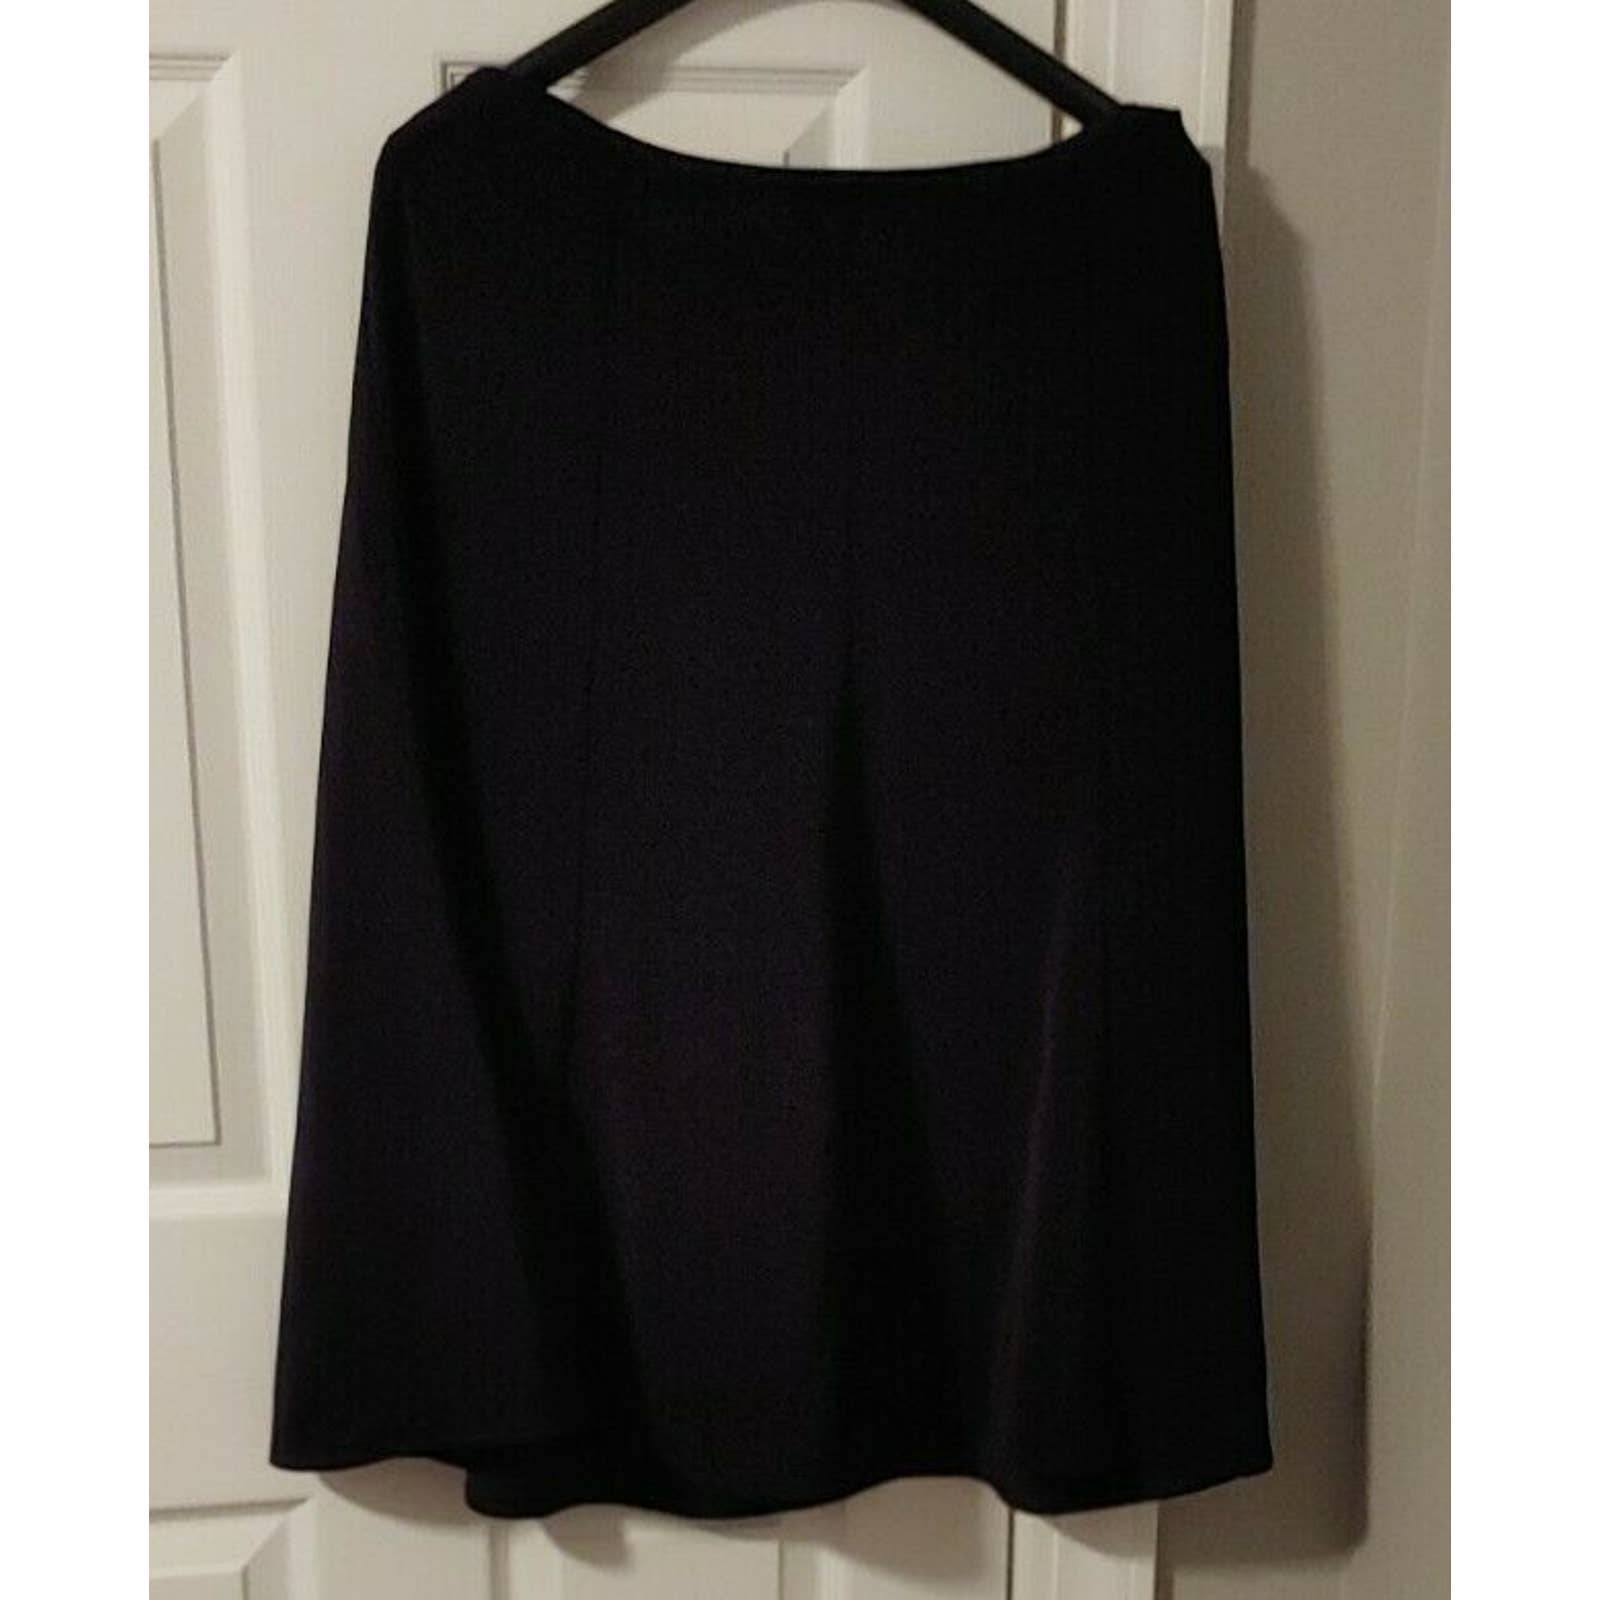 NWT WHBM Black Skirt Flare Side Zip 14